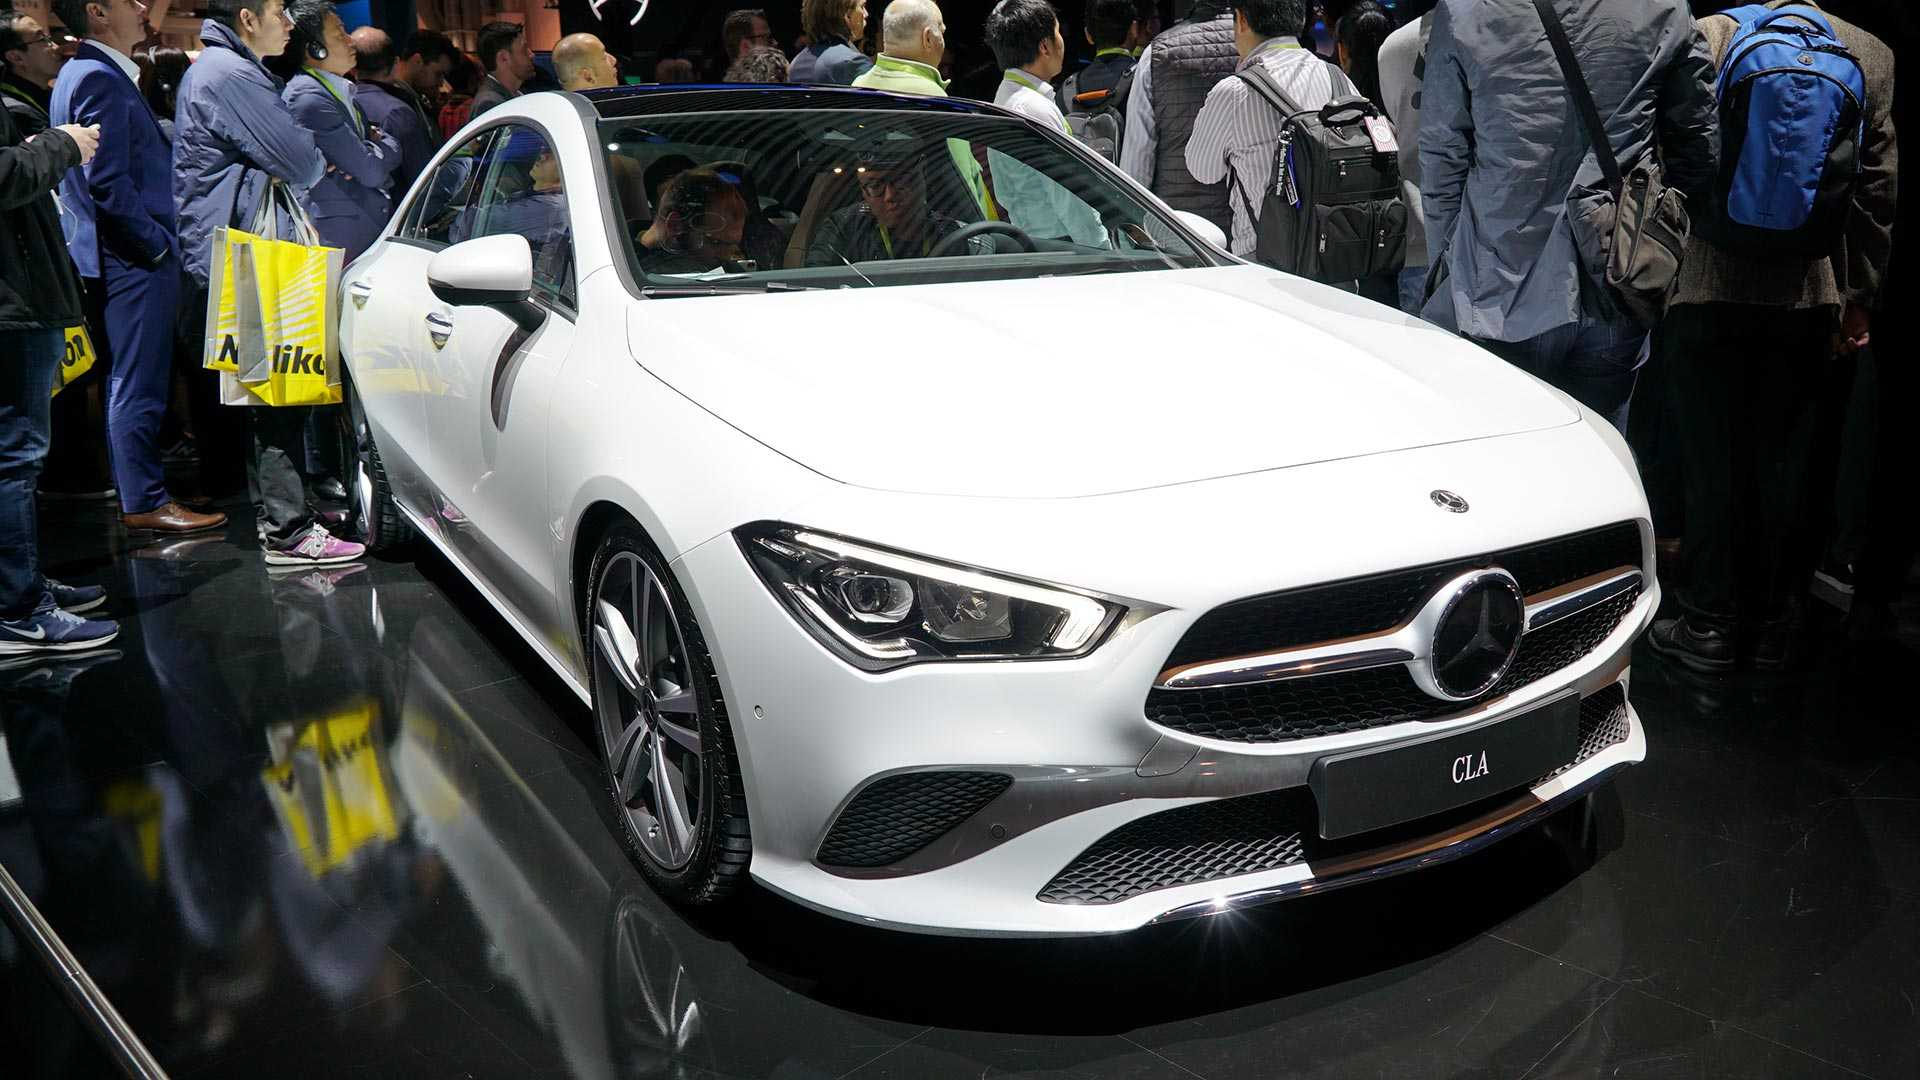 75 The Best 2020 Mercedes CLA 250 Release